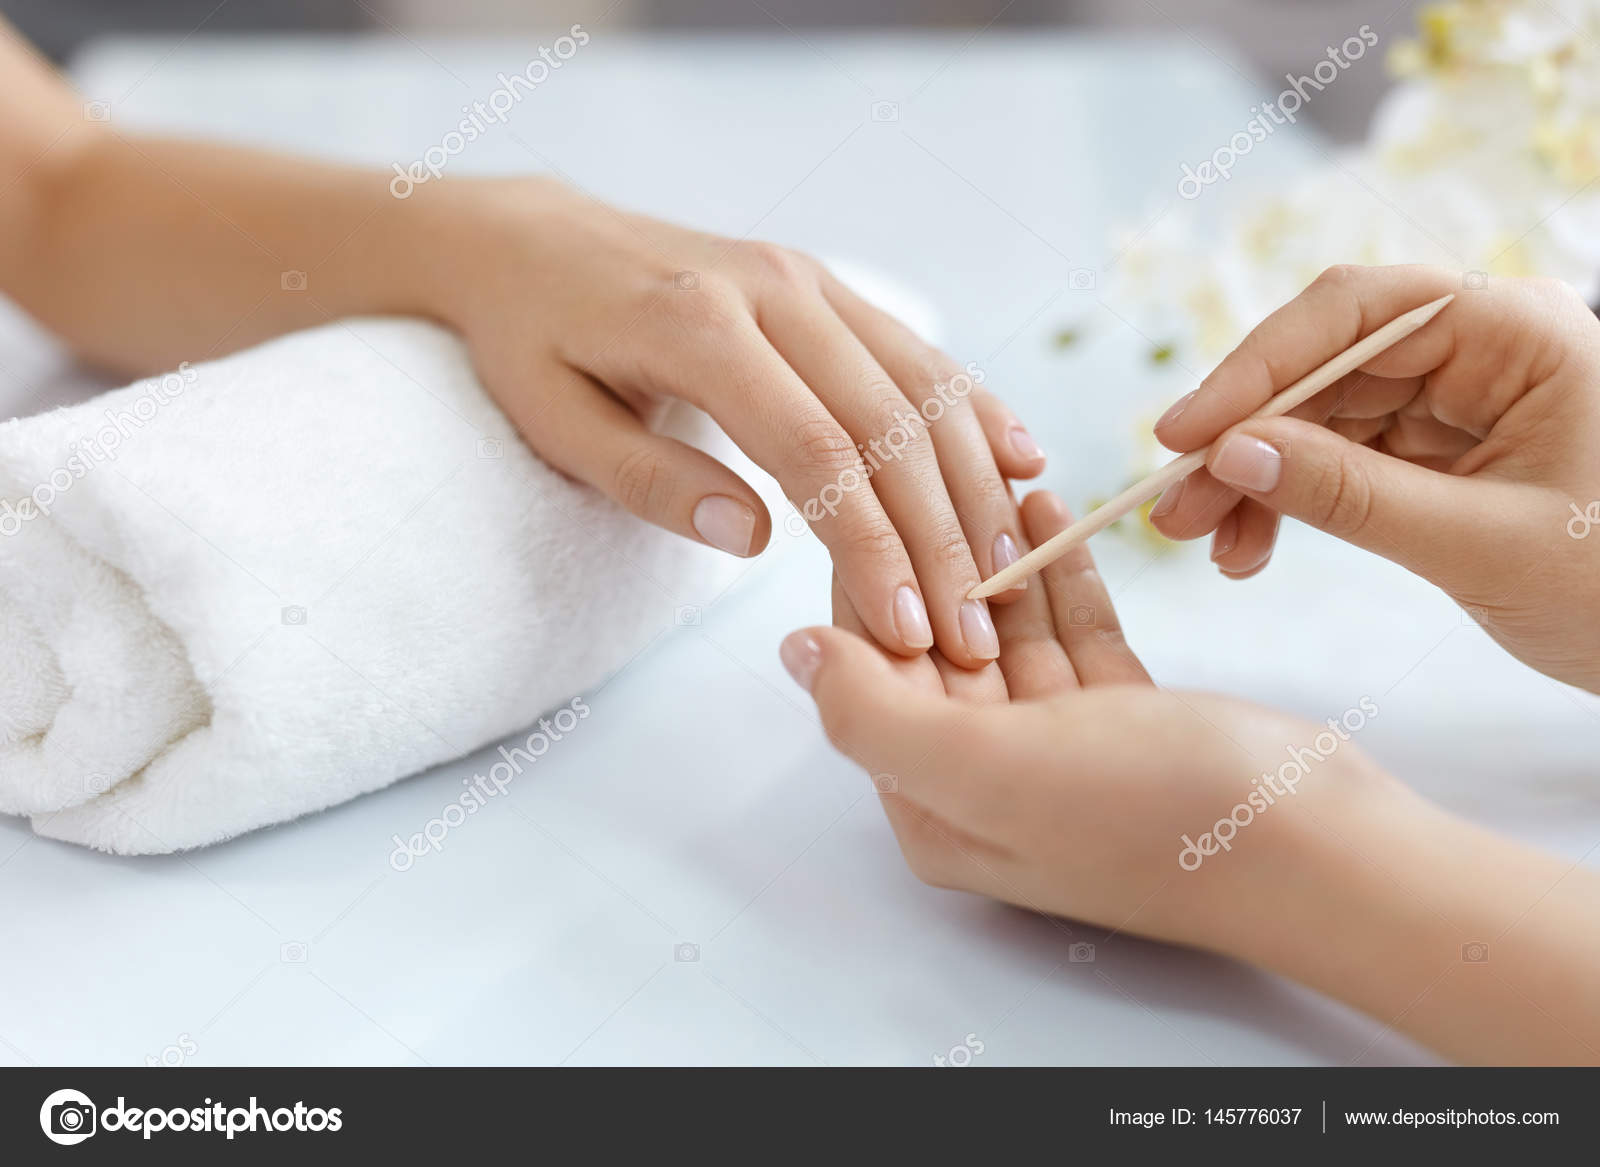 Close-up Hands Pushing Cuticle On Female Nails With Wooden Stick ...